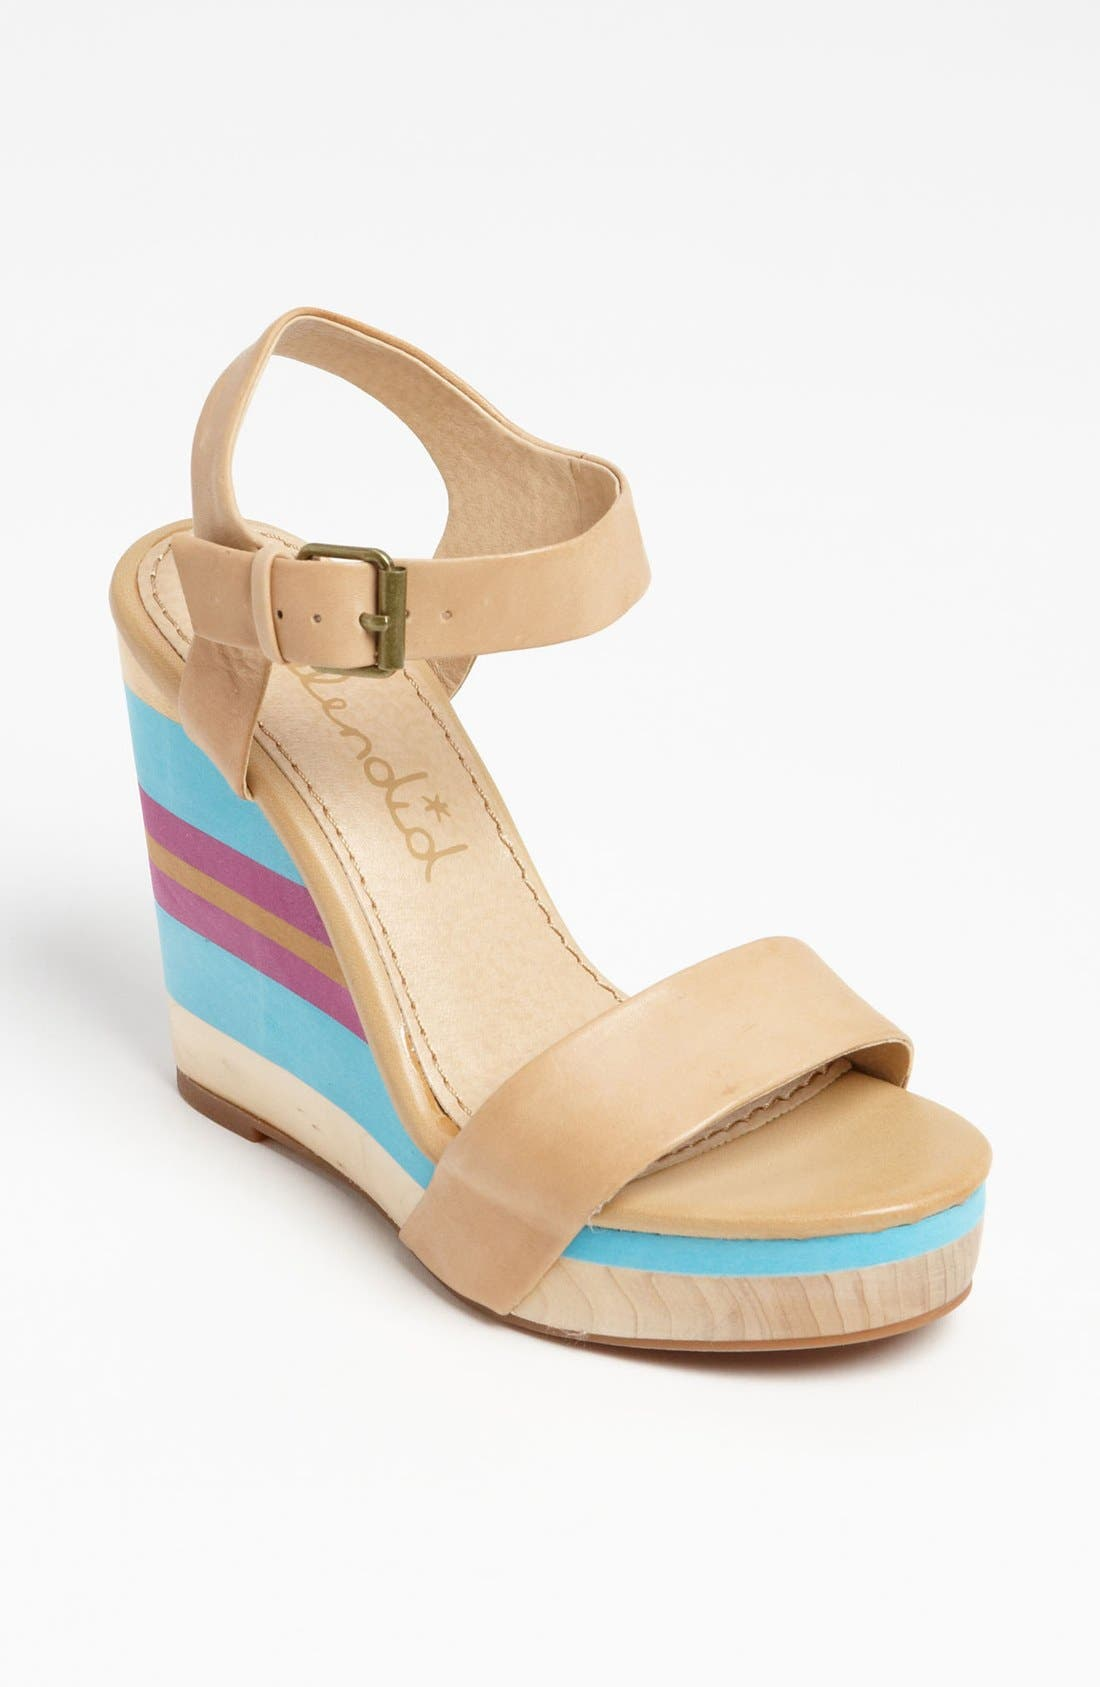 Alternate Image 1 Selected - Splendid 'Kikka' Sandal